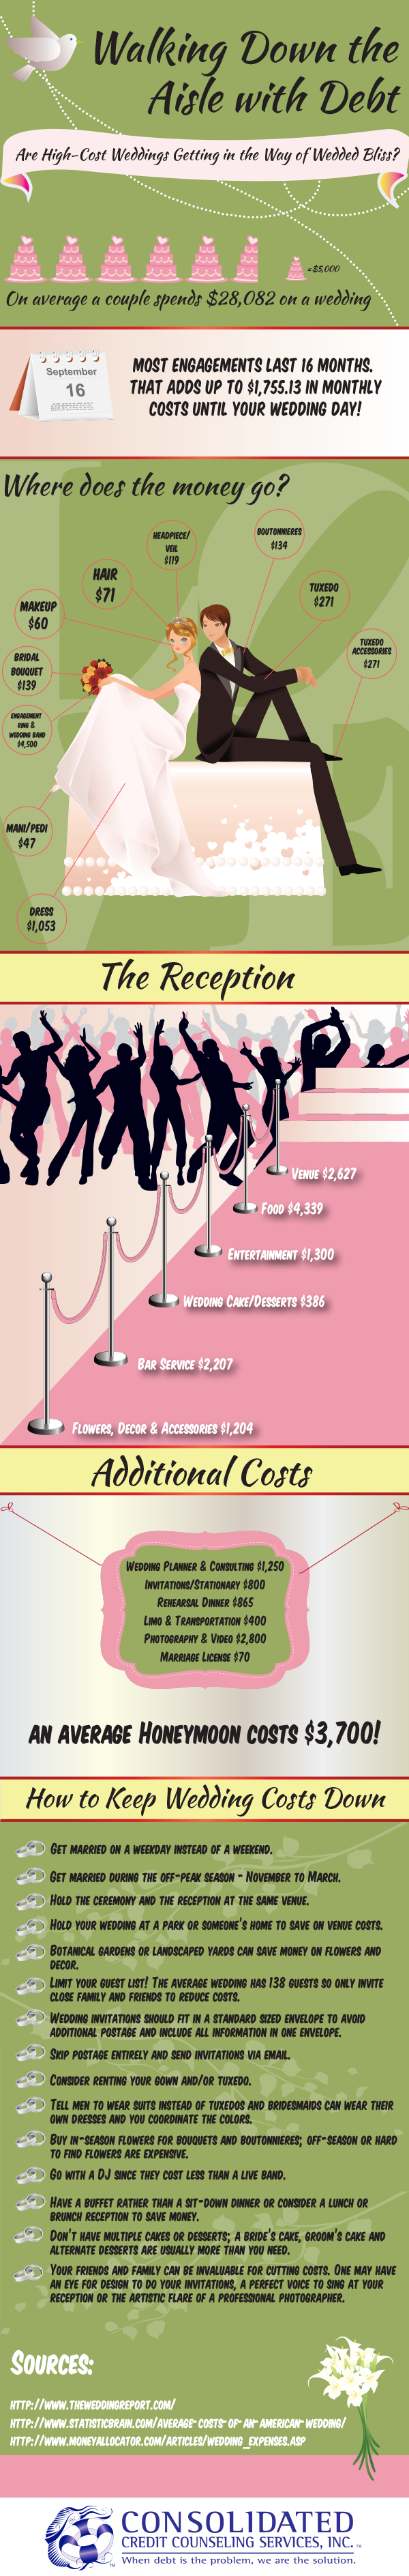 Average Cash Gift For Wedding: Infographic: What Is The Average Cost Of A Wedding